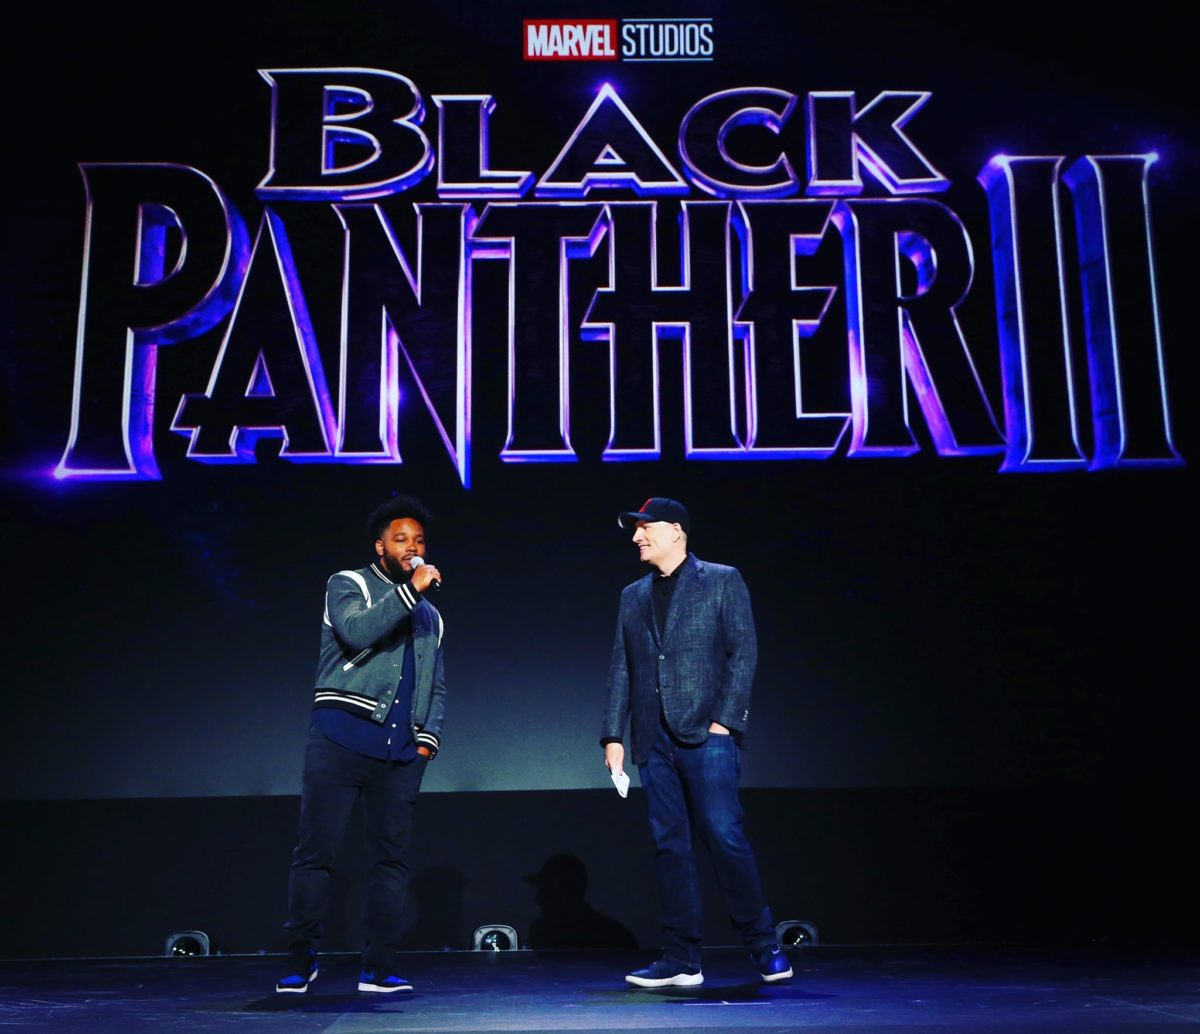 Black Panther 2 release date announced